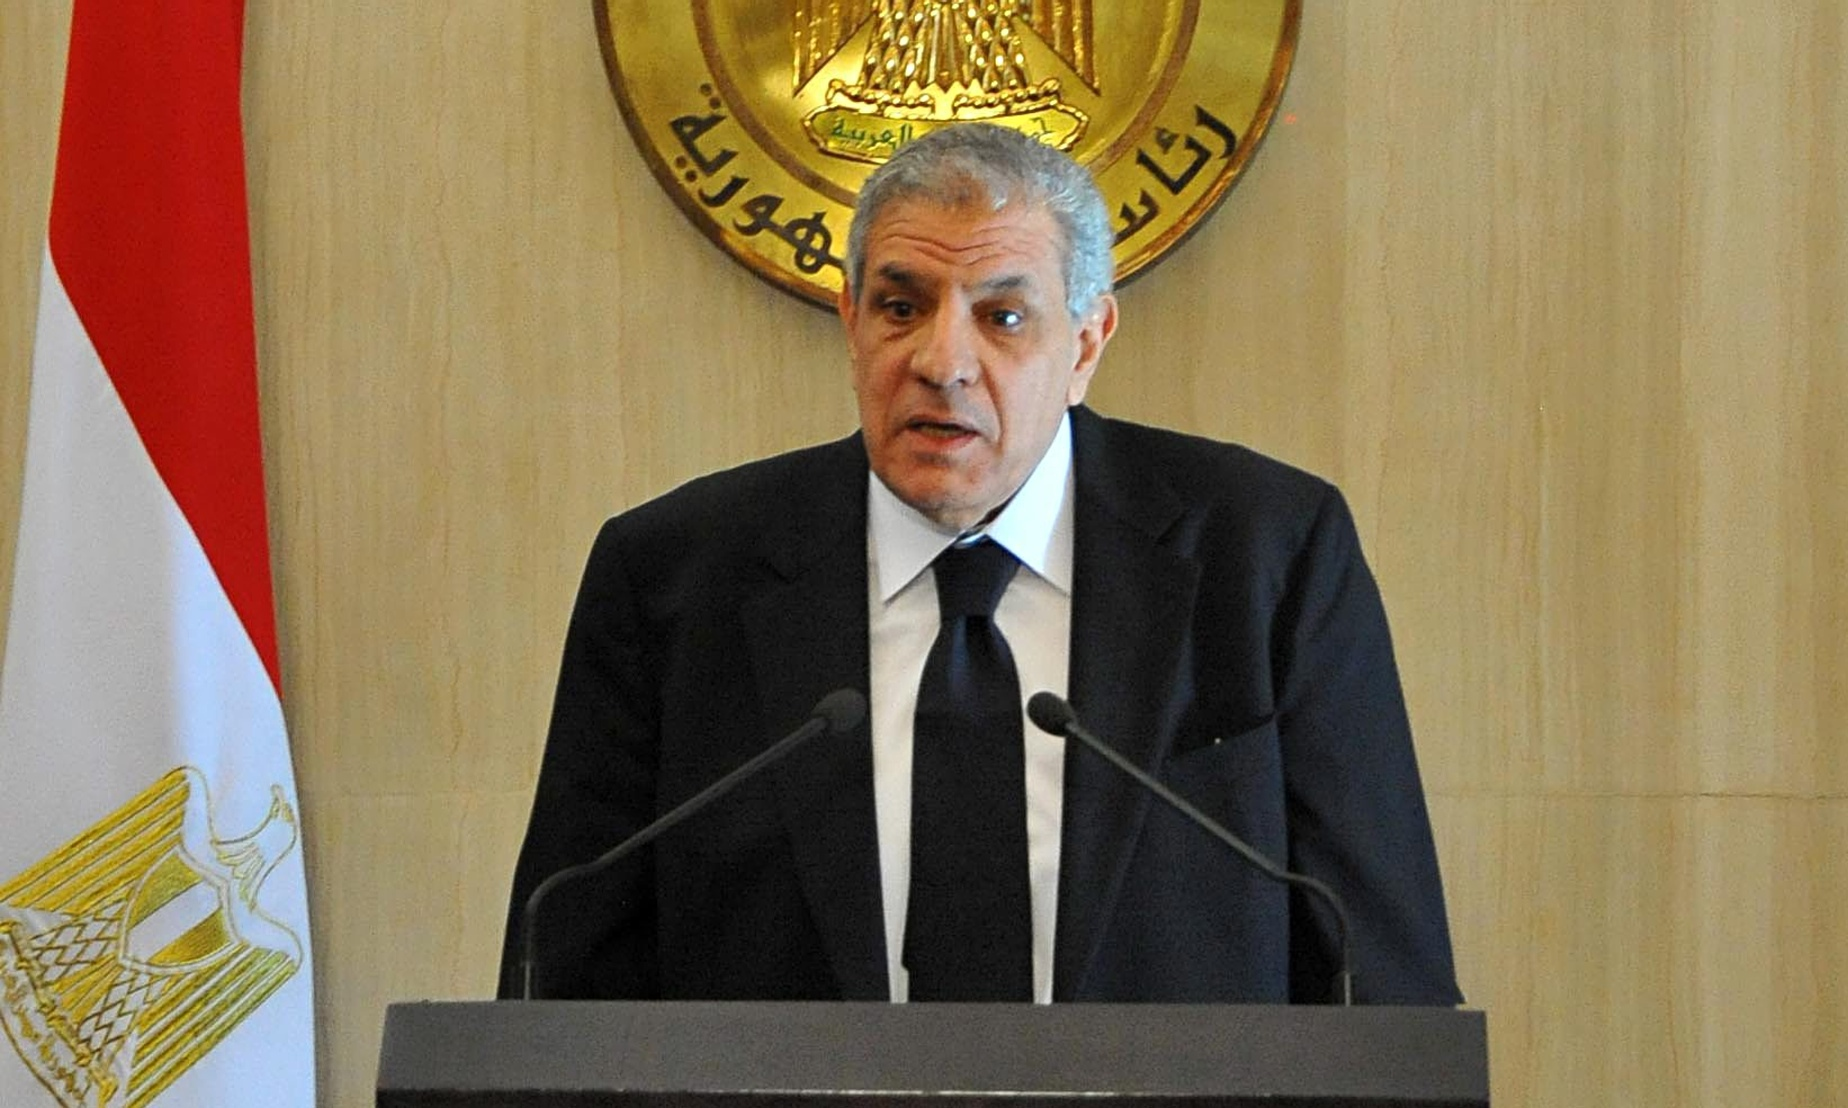 Prime Minister Ibrahim Mahlab was reappointed Monday morning as Egypt's Prime Minister.